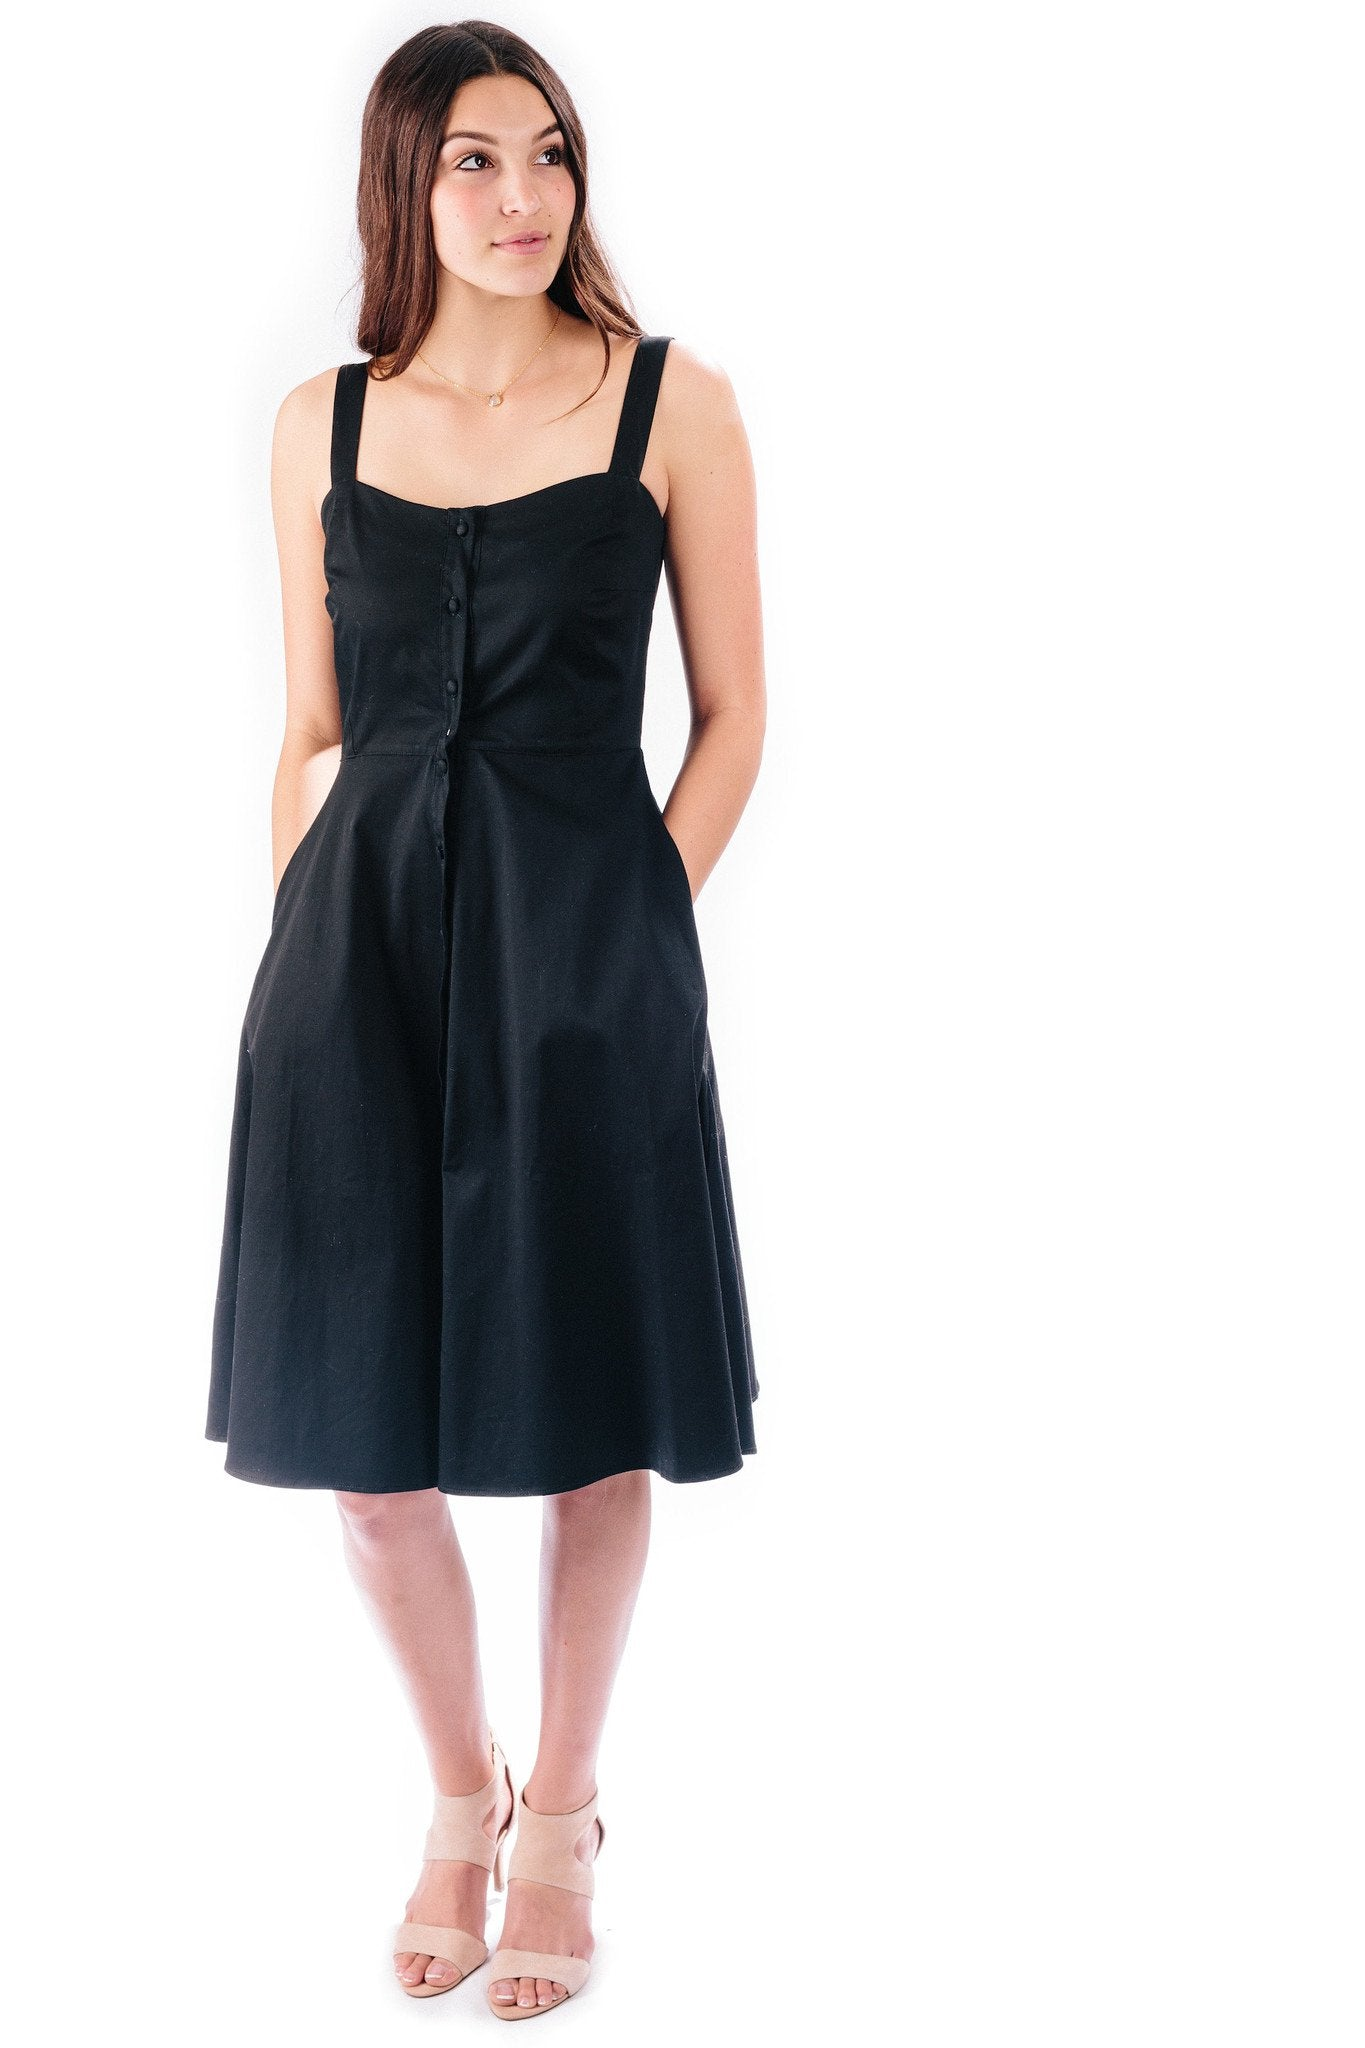 17a9fc373c1a button-down midi dress in ebony - REY SWIMWEAR